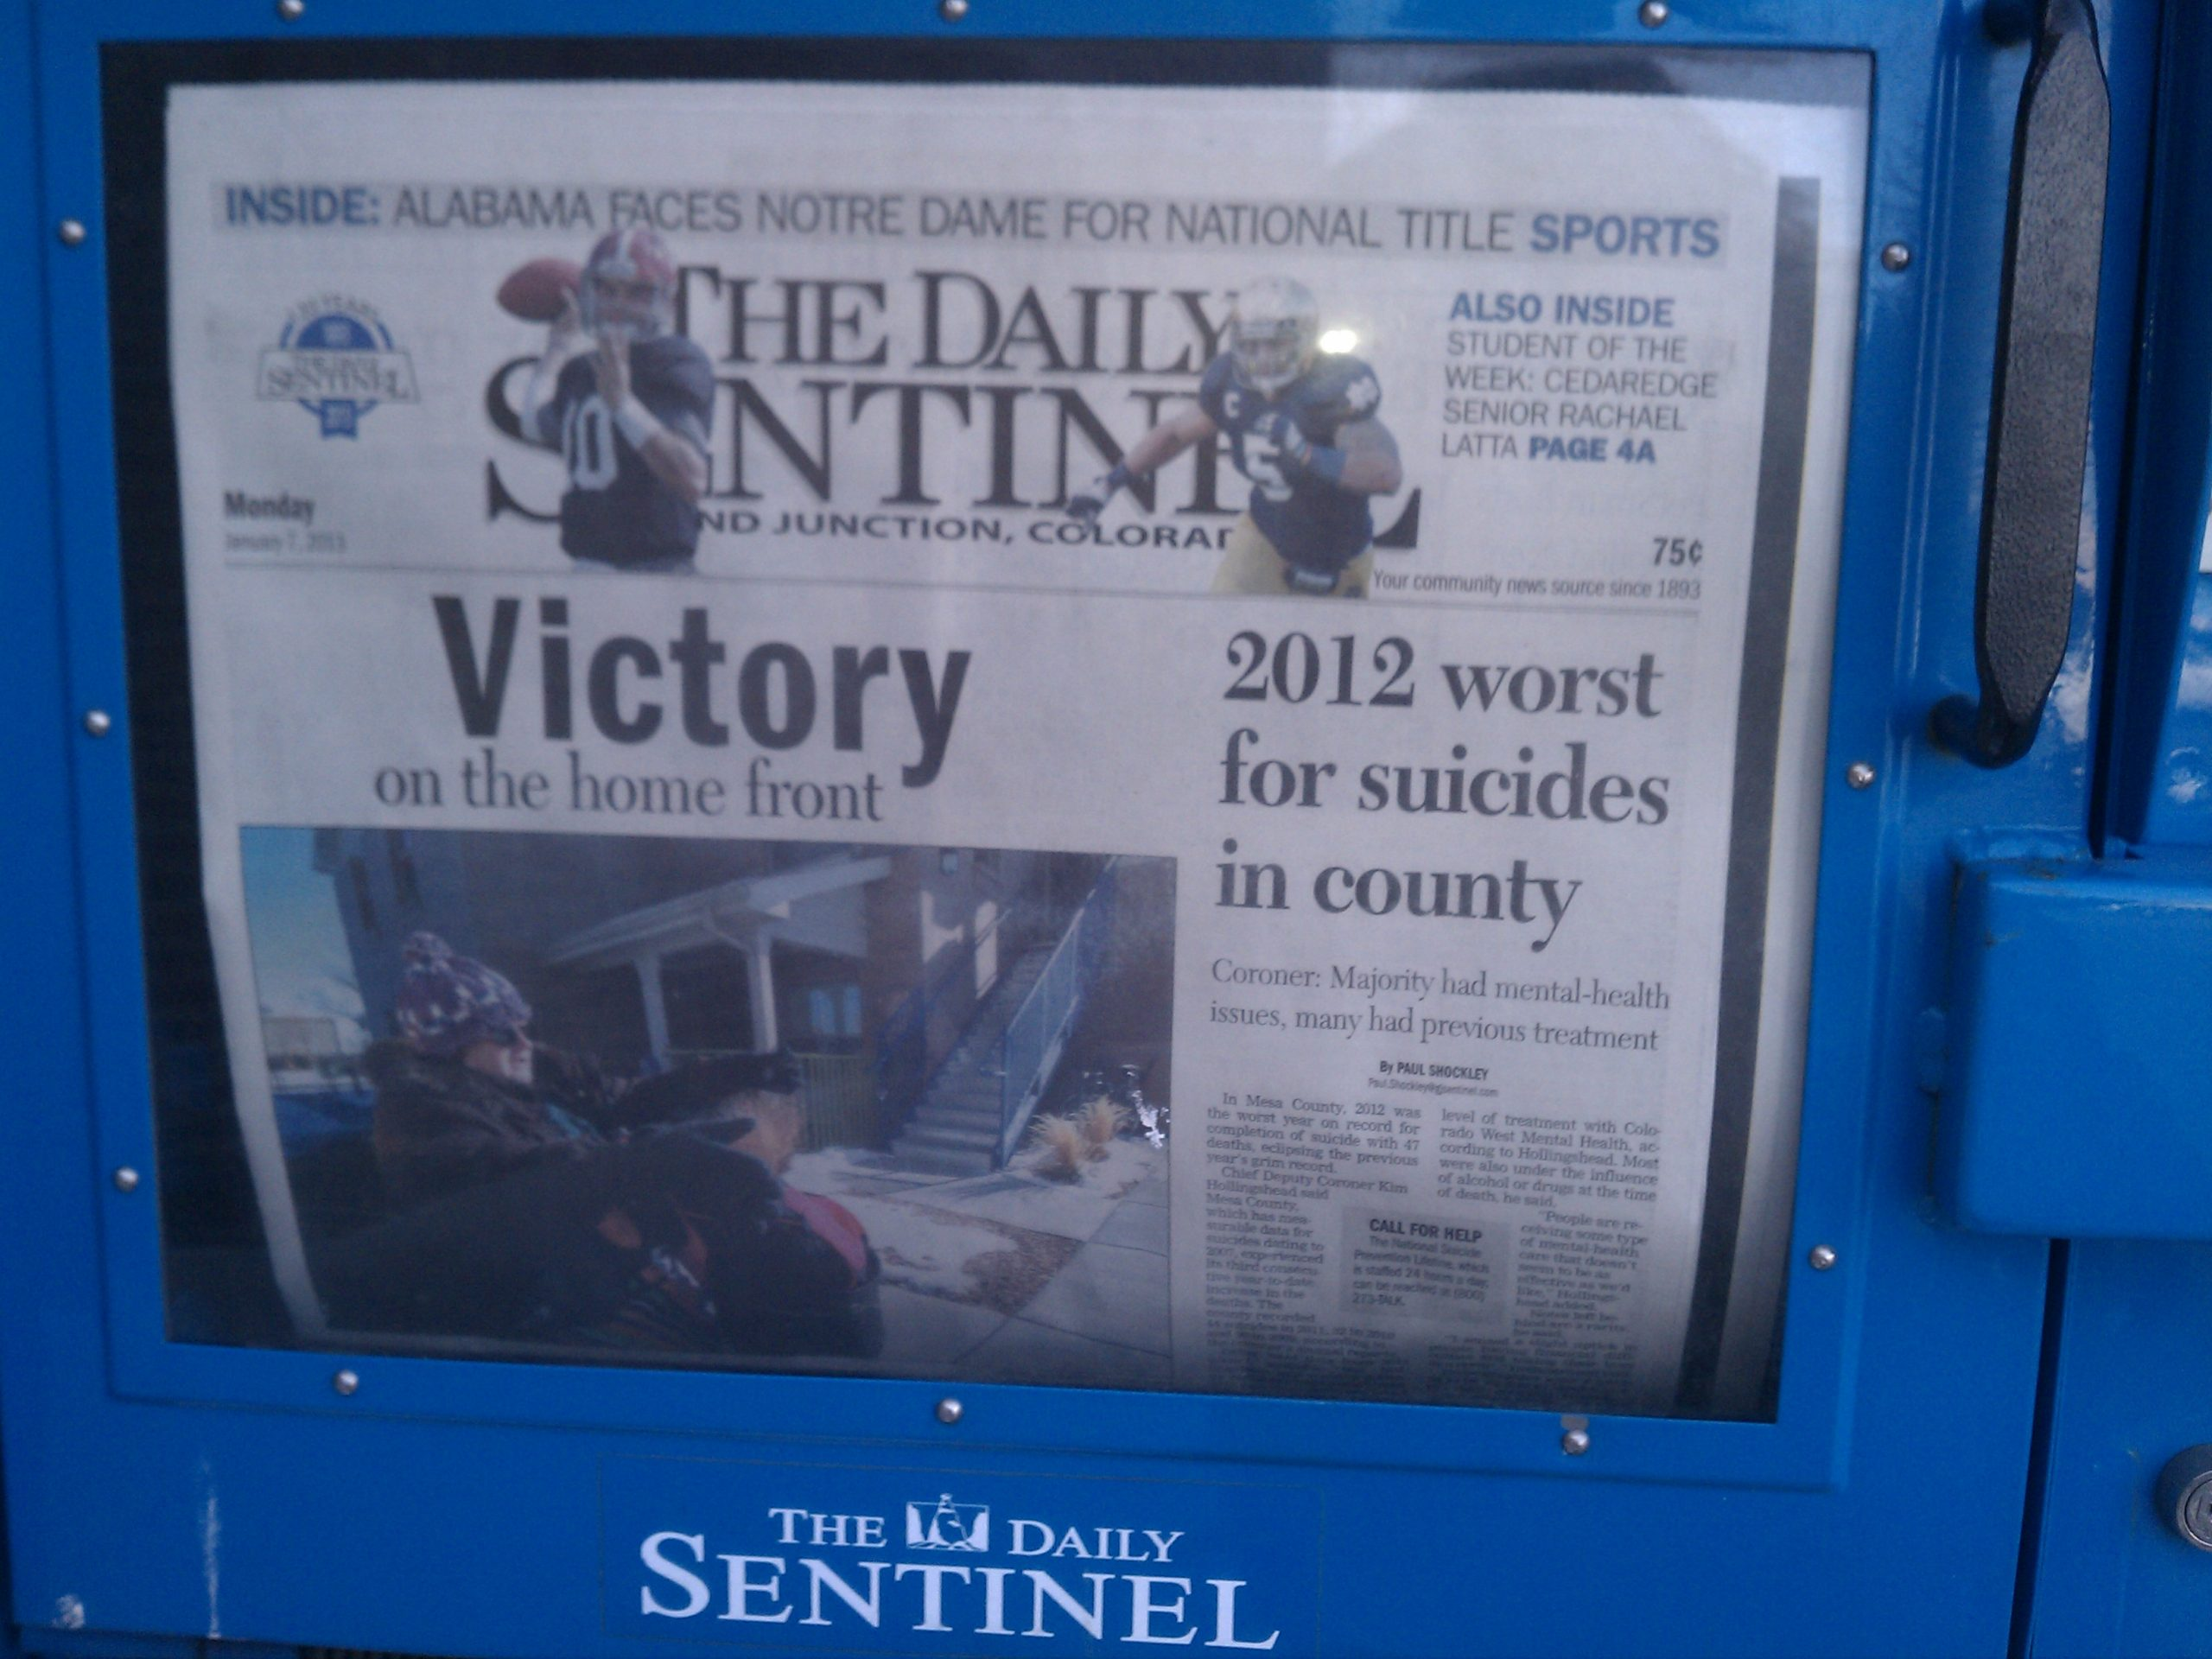 The Grand Junction (CO) Daily Sentinel failed to catch this embarrassing juxtaposition of headlines.